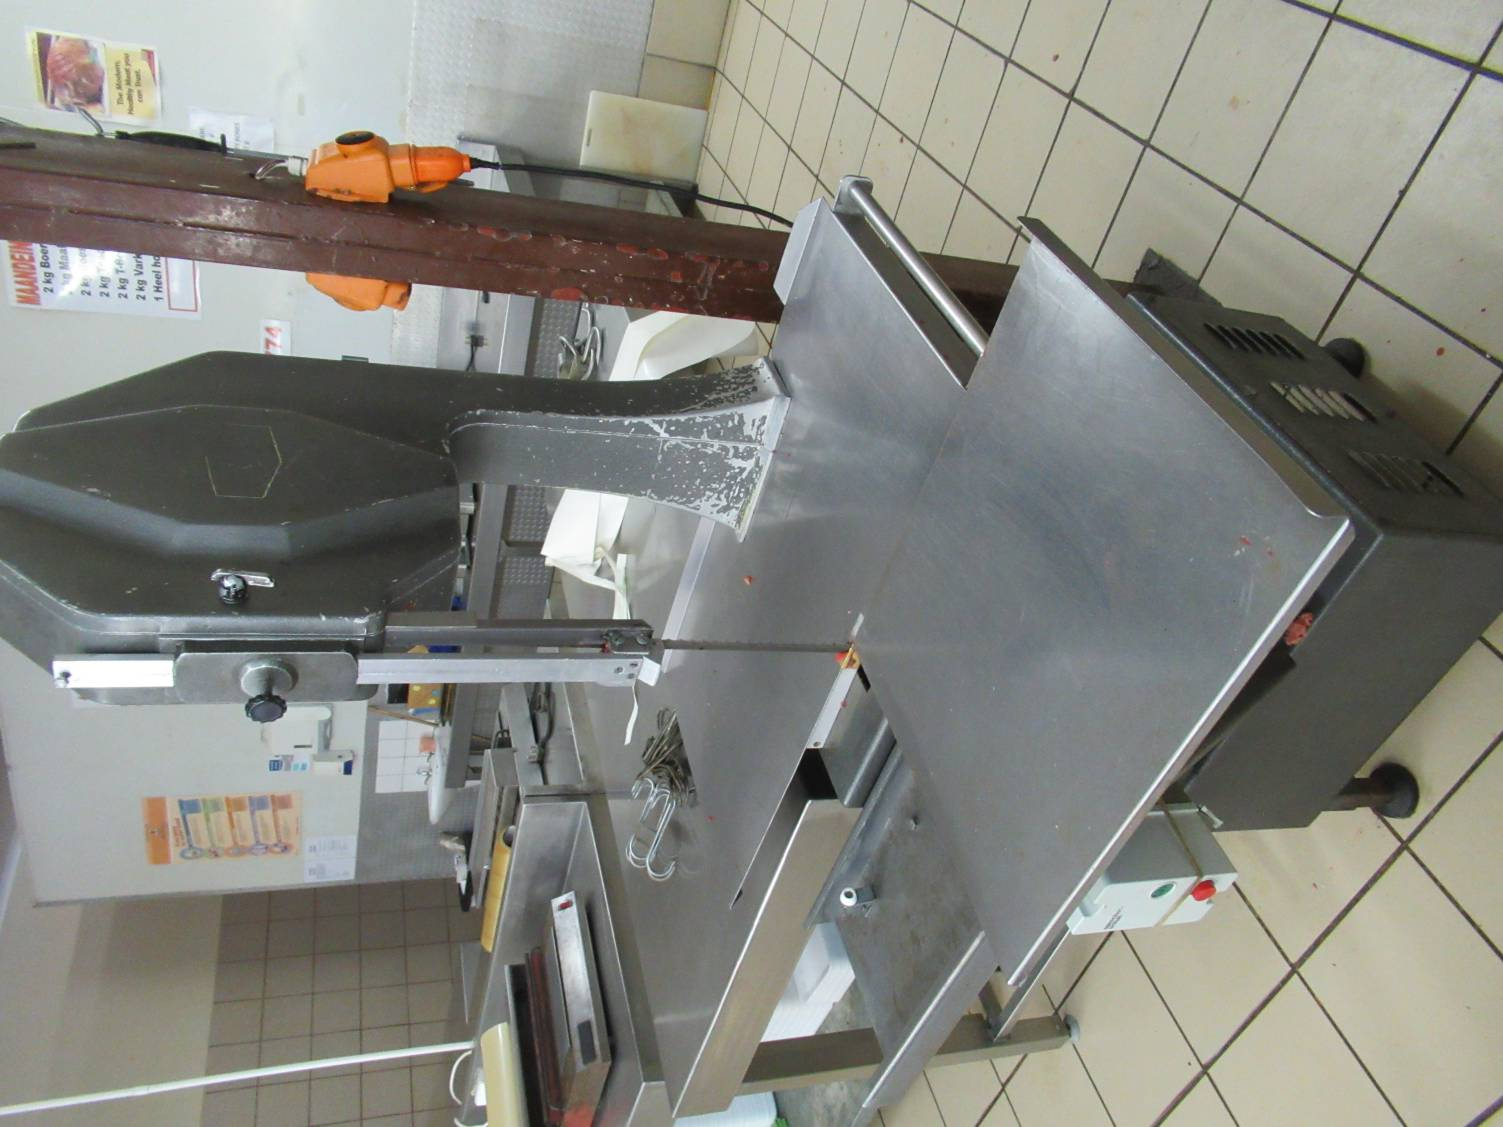 Butcherquip - Onsite Auction Of A Butchery And Meat Processing Equipment